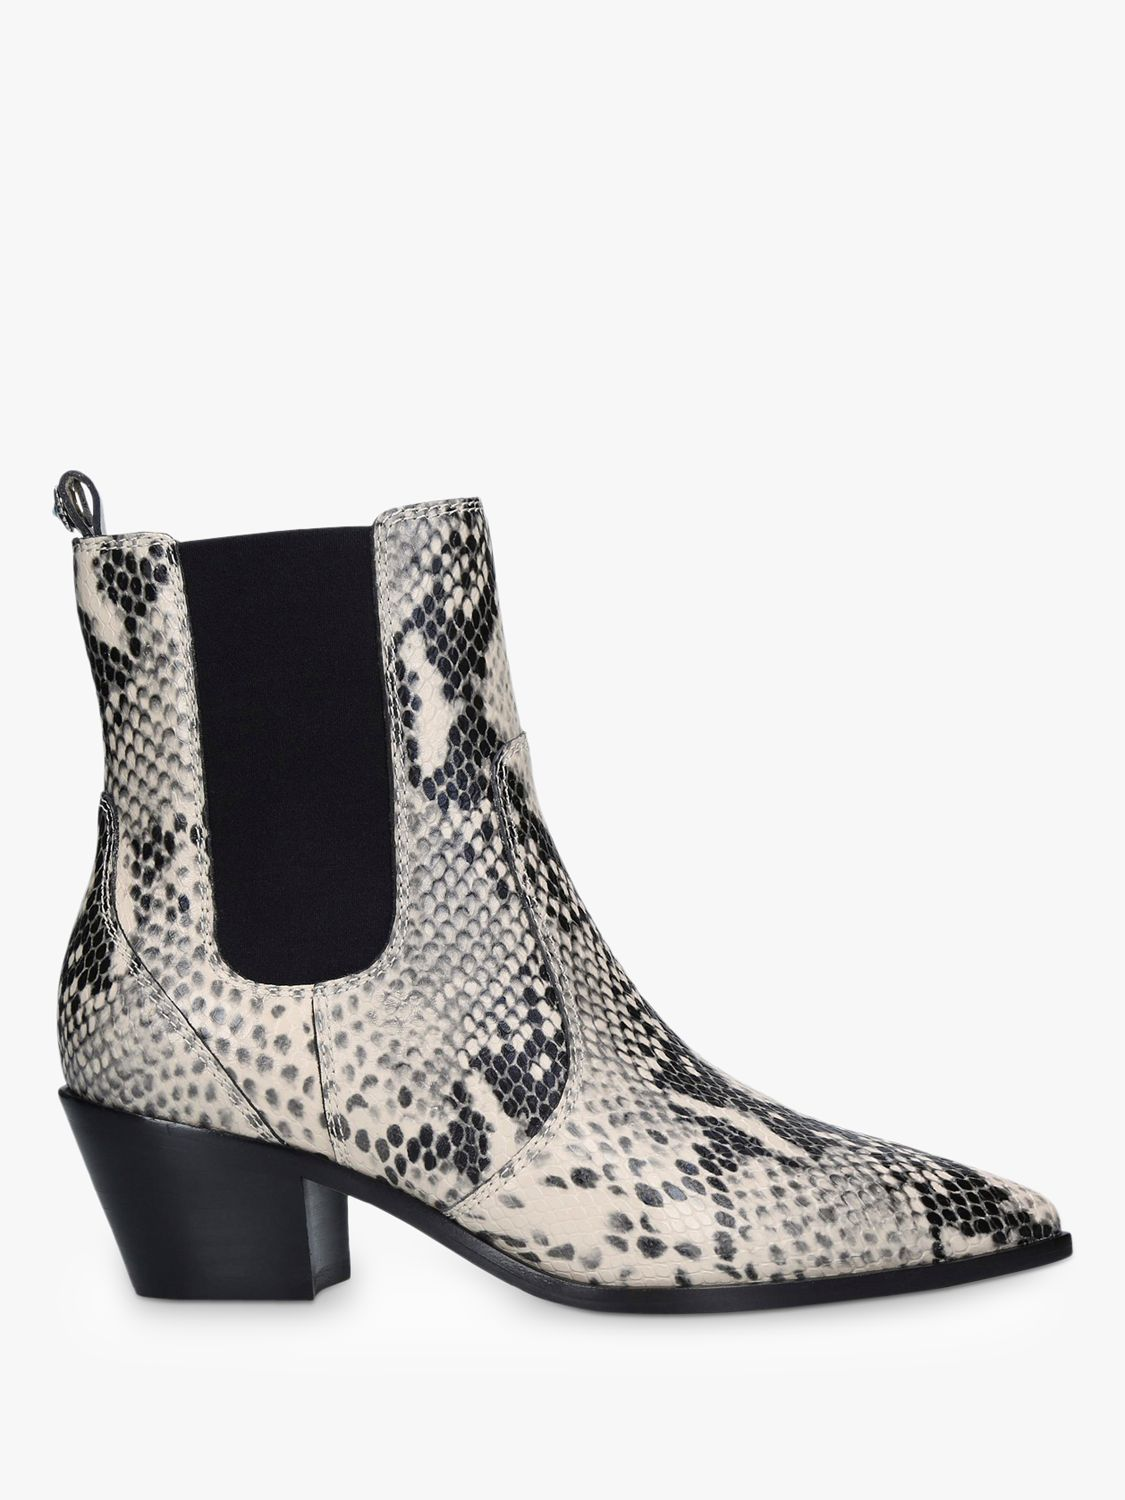 Paige Paige Willa Snake Print Ankle Boots, Natural